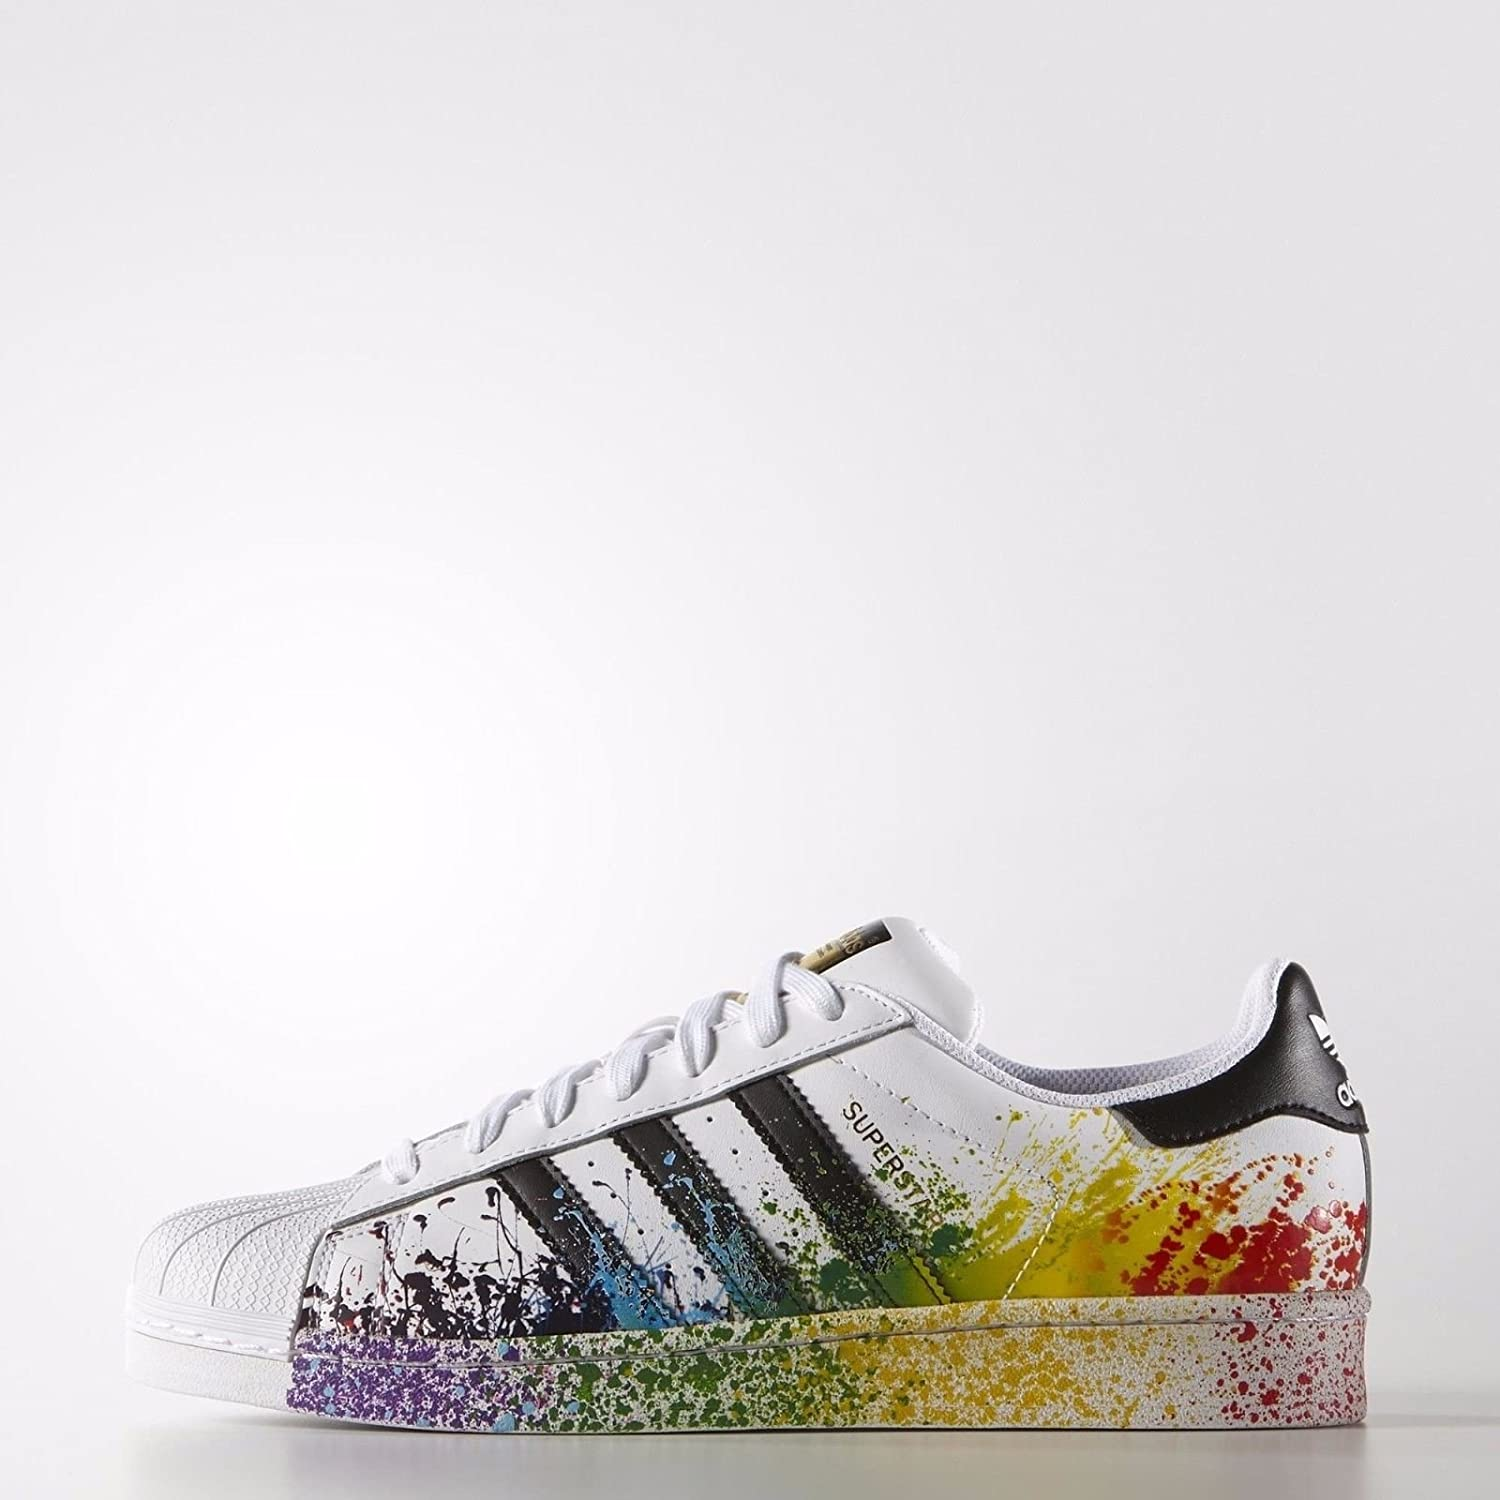 Adidas Superstar LGBT Pride Pack D70351 White/Black Rainbow Men's Shoes  Size 13: Amazon.co.uk: Shoes & Bags